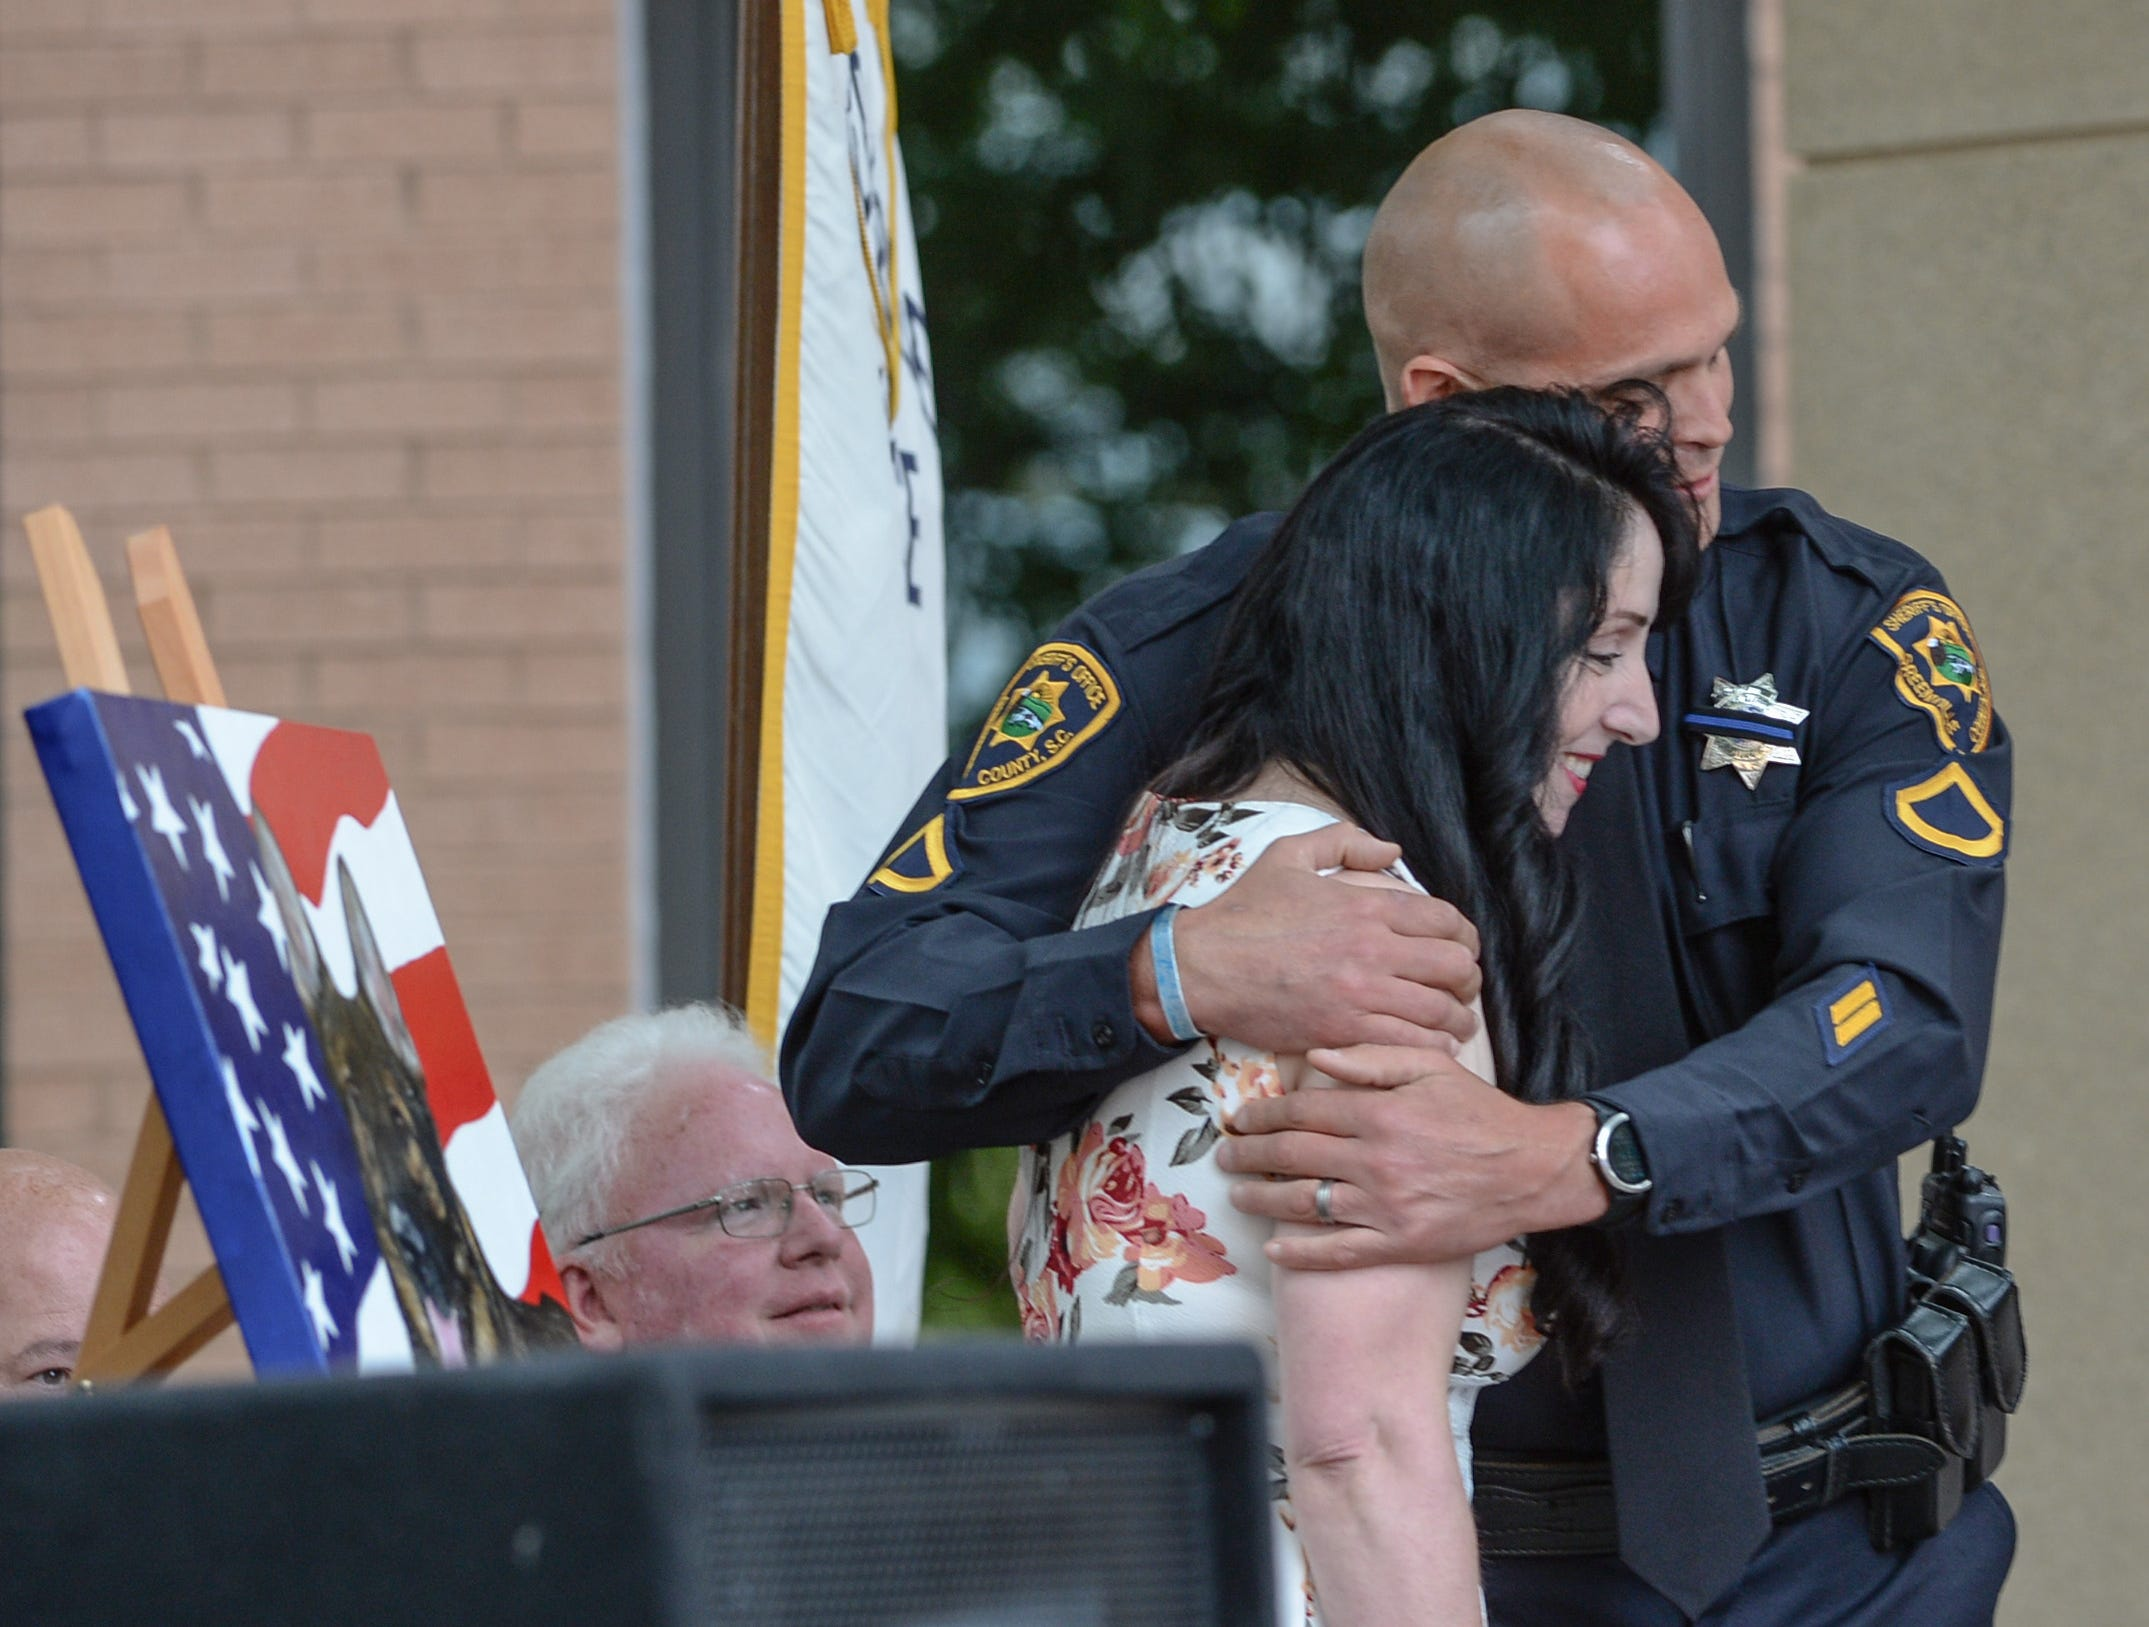 Brandon Surratt, right, of the Greenville Sheriff's Office, hugs artist Loreena Pantaleone, of Pennsylvania, who presented him a painting of Hyco, during the 2019 Peace Officer Memorial Service Wednesday May 15, 2019, in front of the Anderson County courthouse. People attended to help honor the lives of officers lost in the line of duty. Surratt, a former Anderson County Sheriff Deputy who lost his K-9 Hyco in the line of duty in 2015, spoke about serving as an officer.